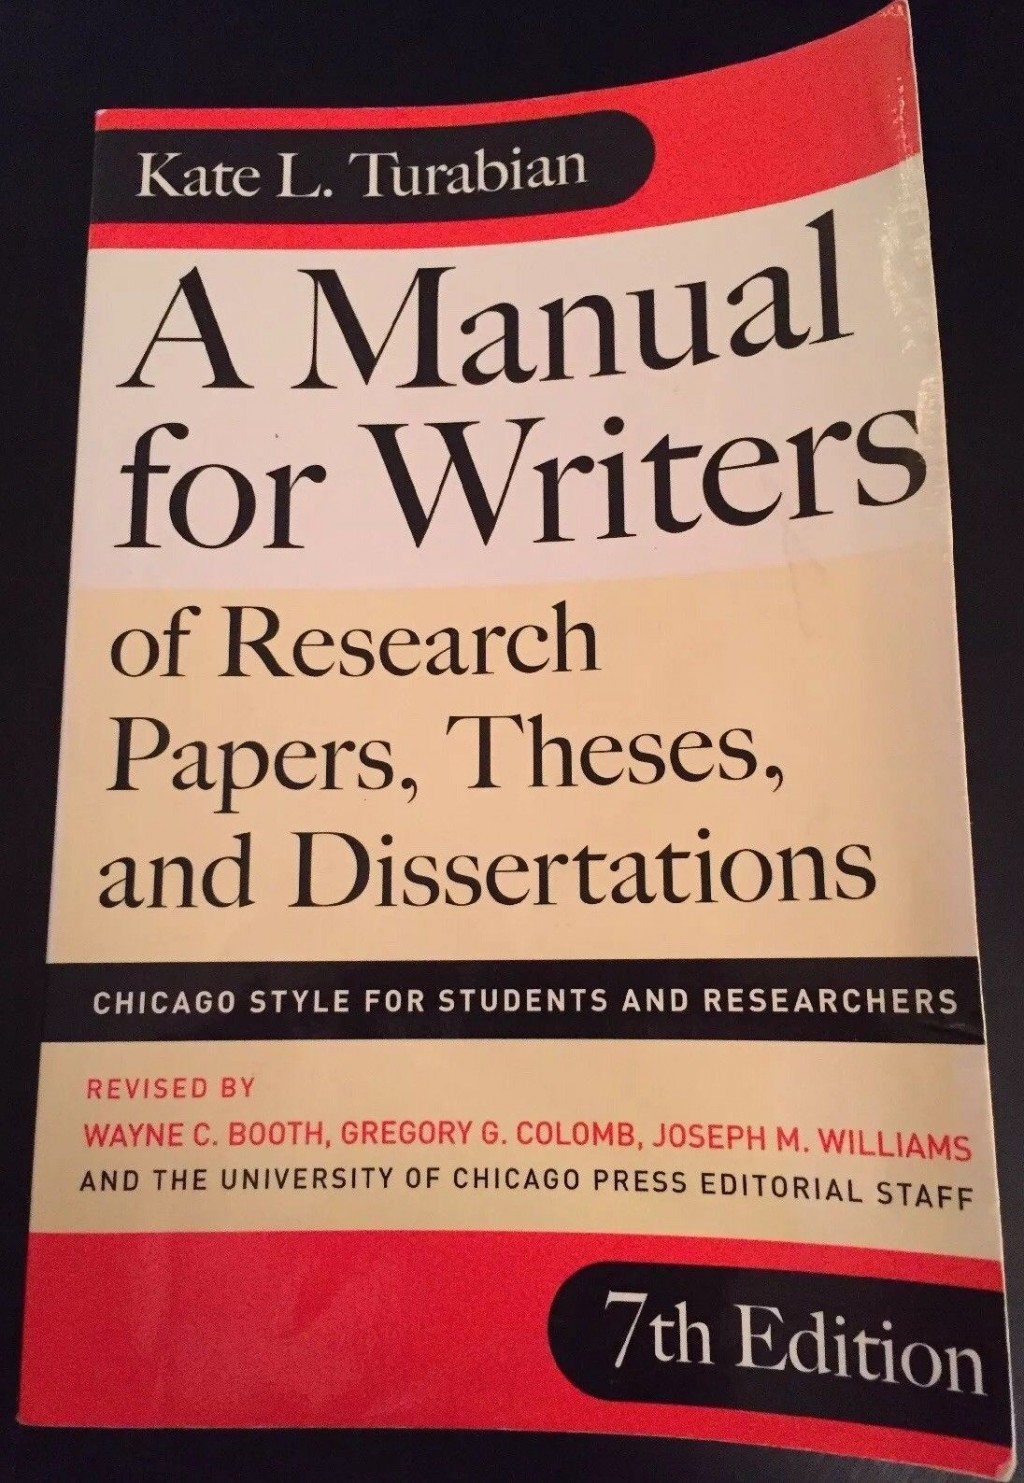 028 Research Paper Manual For Writers Of Papers Theses And Dissertations Turabian S Amazing A Pdf Large